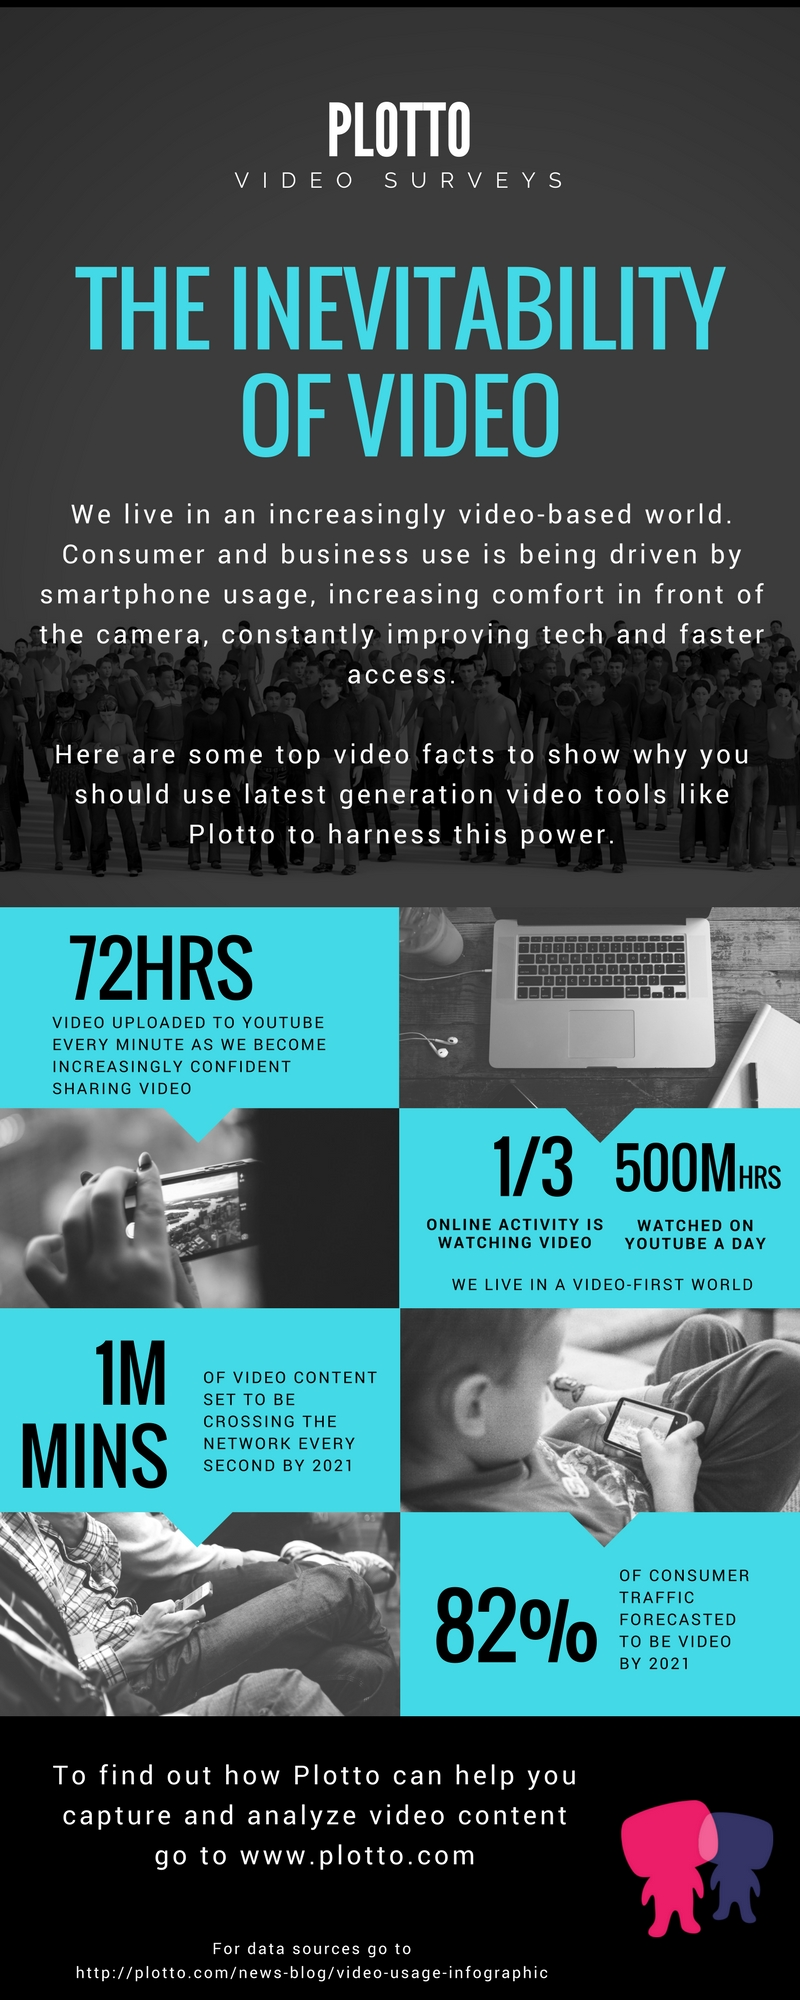 Plotto_video_infographic.jpg